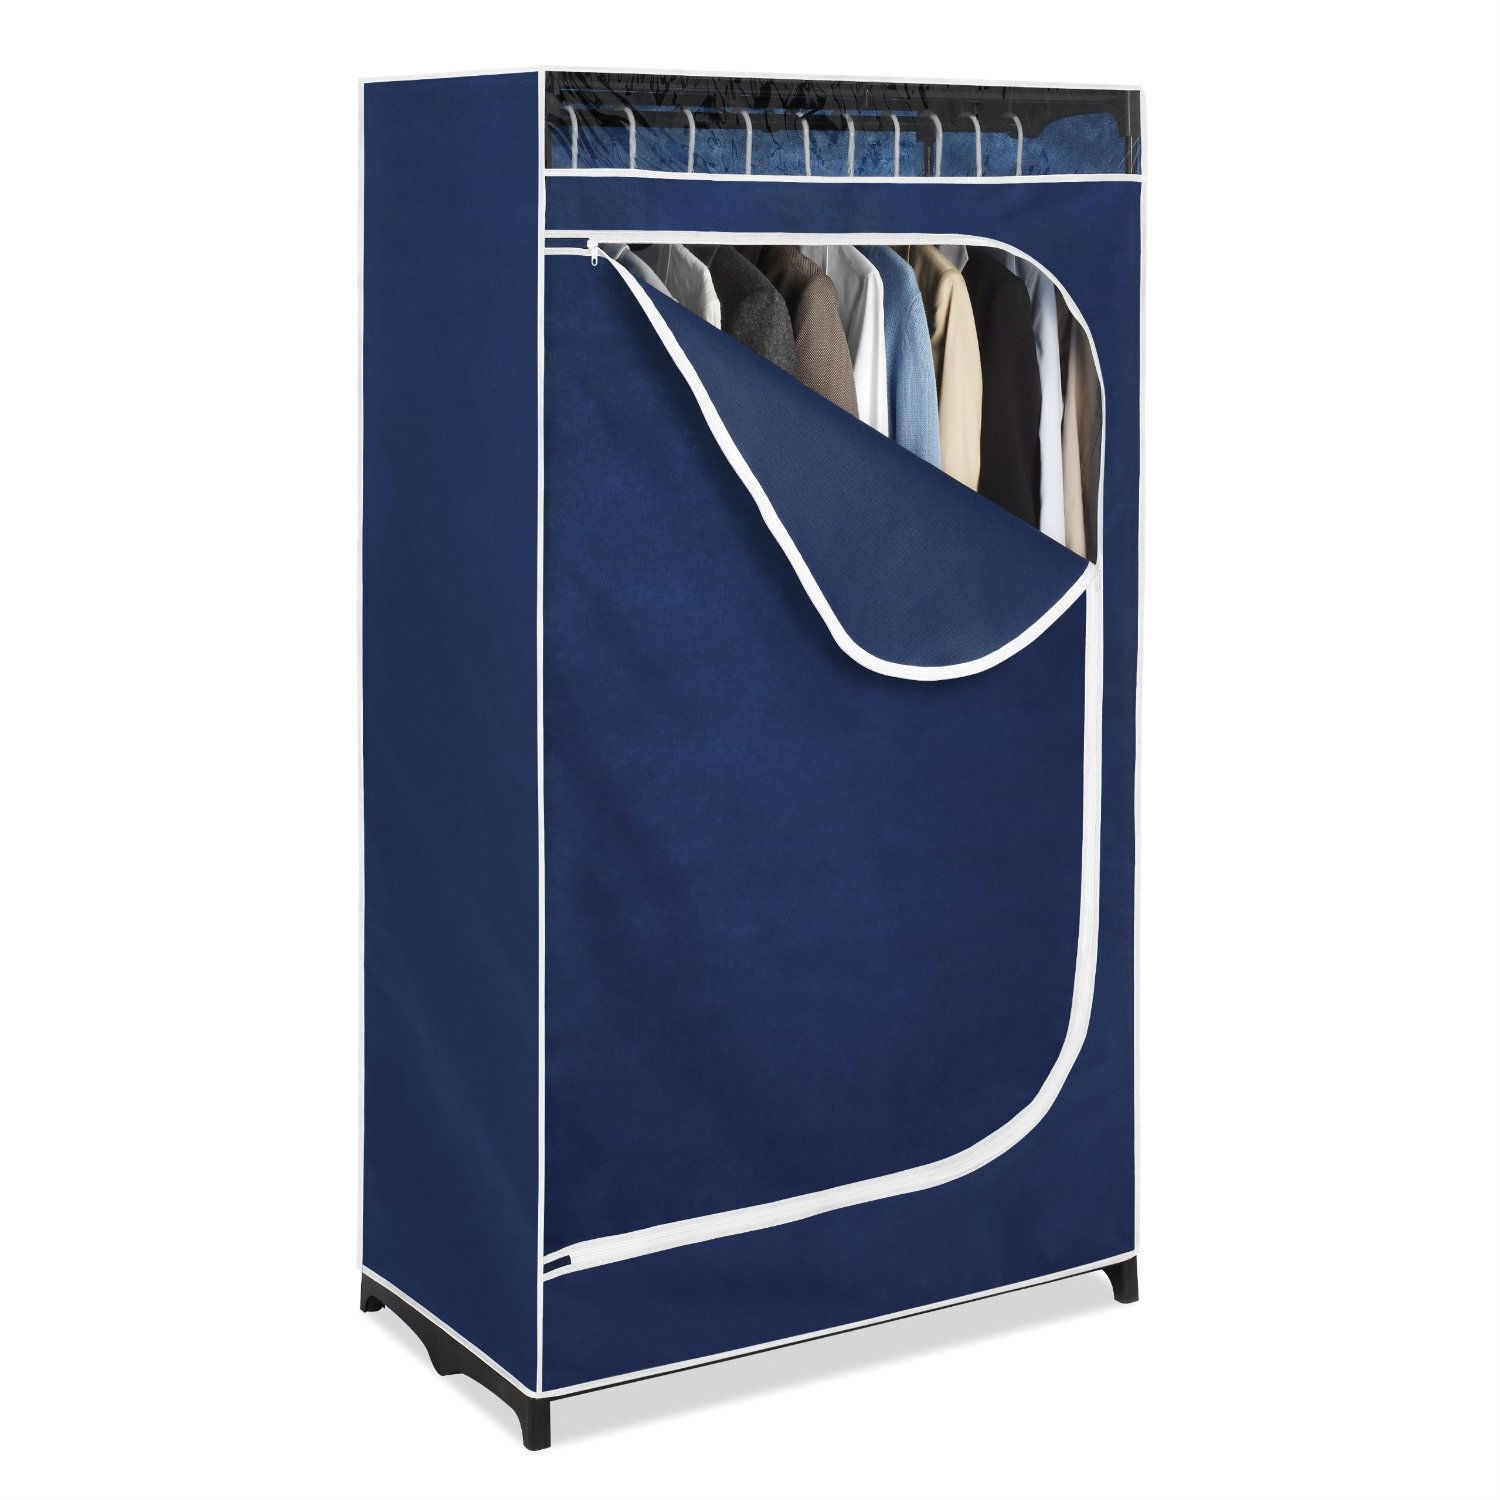 This Portable Clothes Closet Wardrobe in Blue Breathable Fabric features a breathable fabric cover with an easy access zipper and a see-through window. It is made with a durable 36 inch frame and is perfect for your extra clothes storage needs. Use in a spare room, garage, attic or anywhere in your home or office.